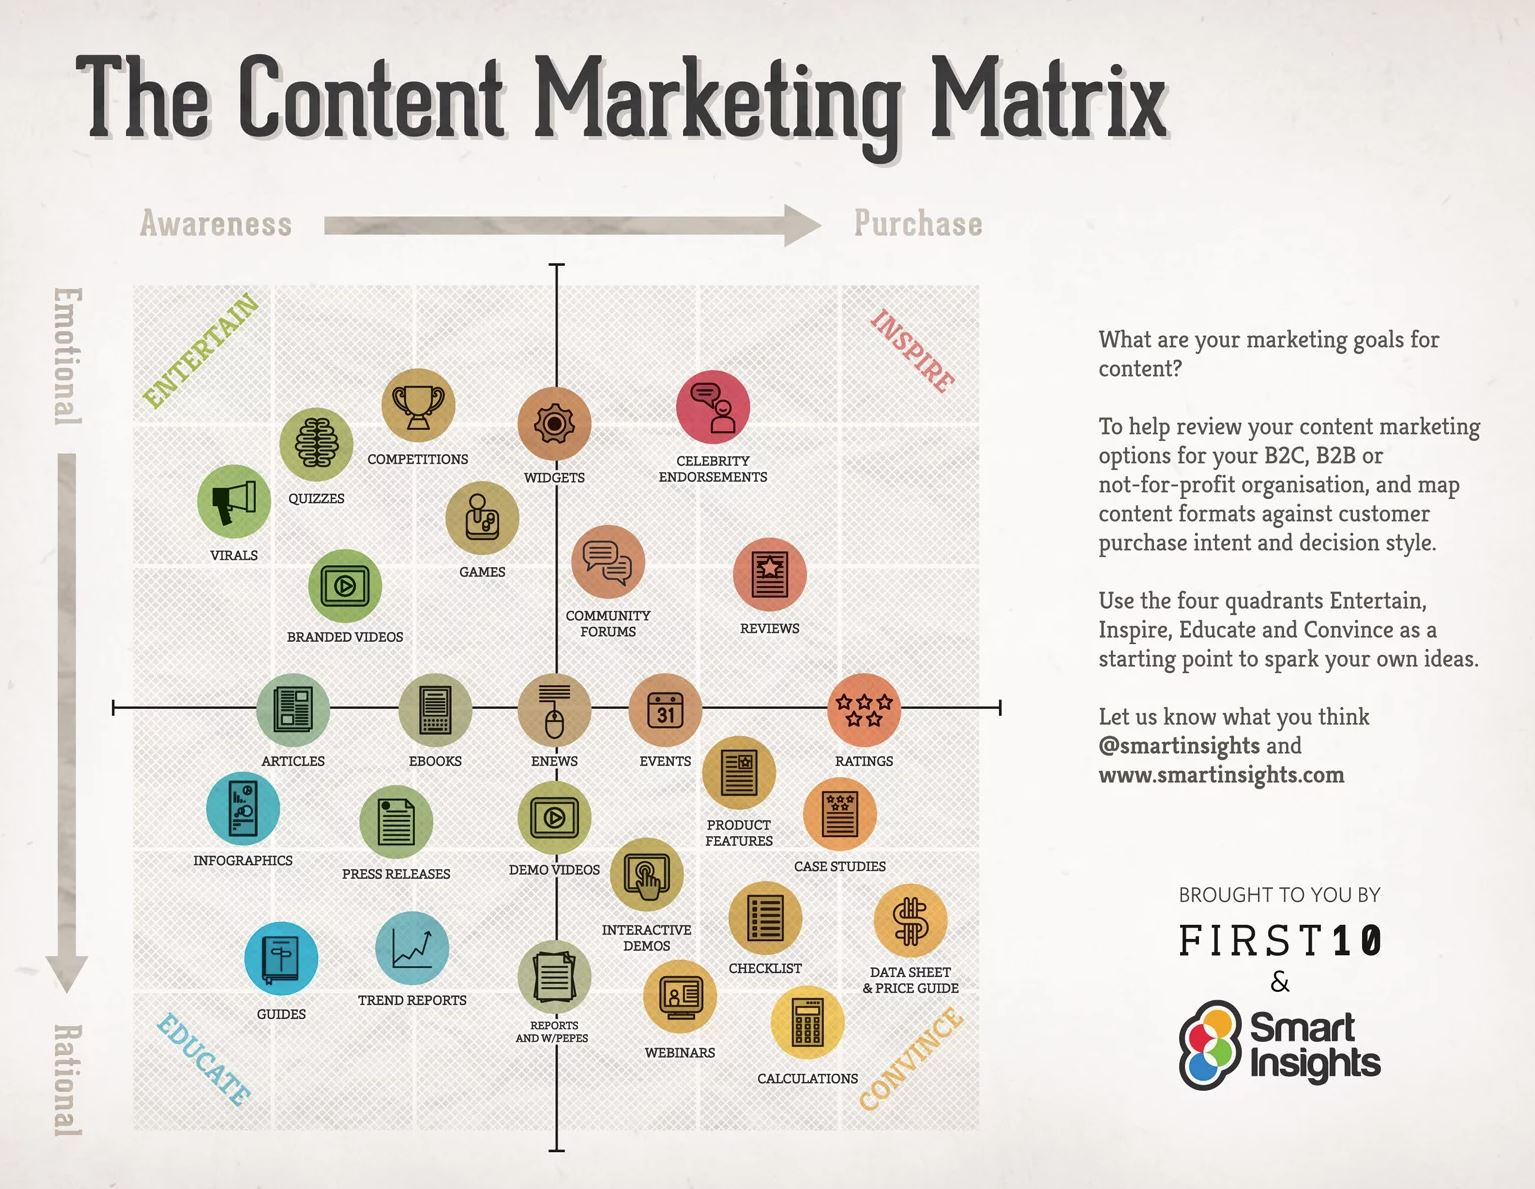 Content marketing matrix infographic